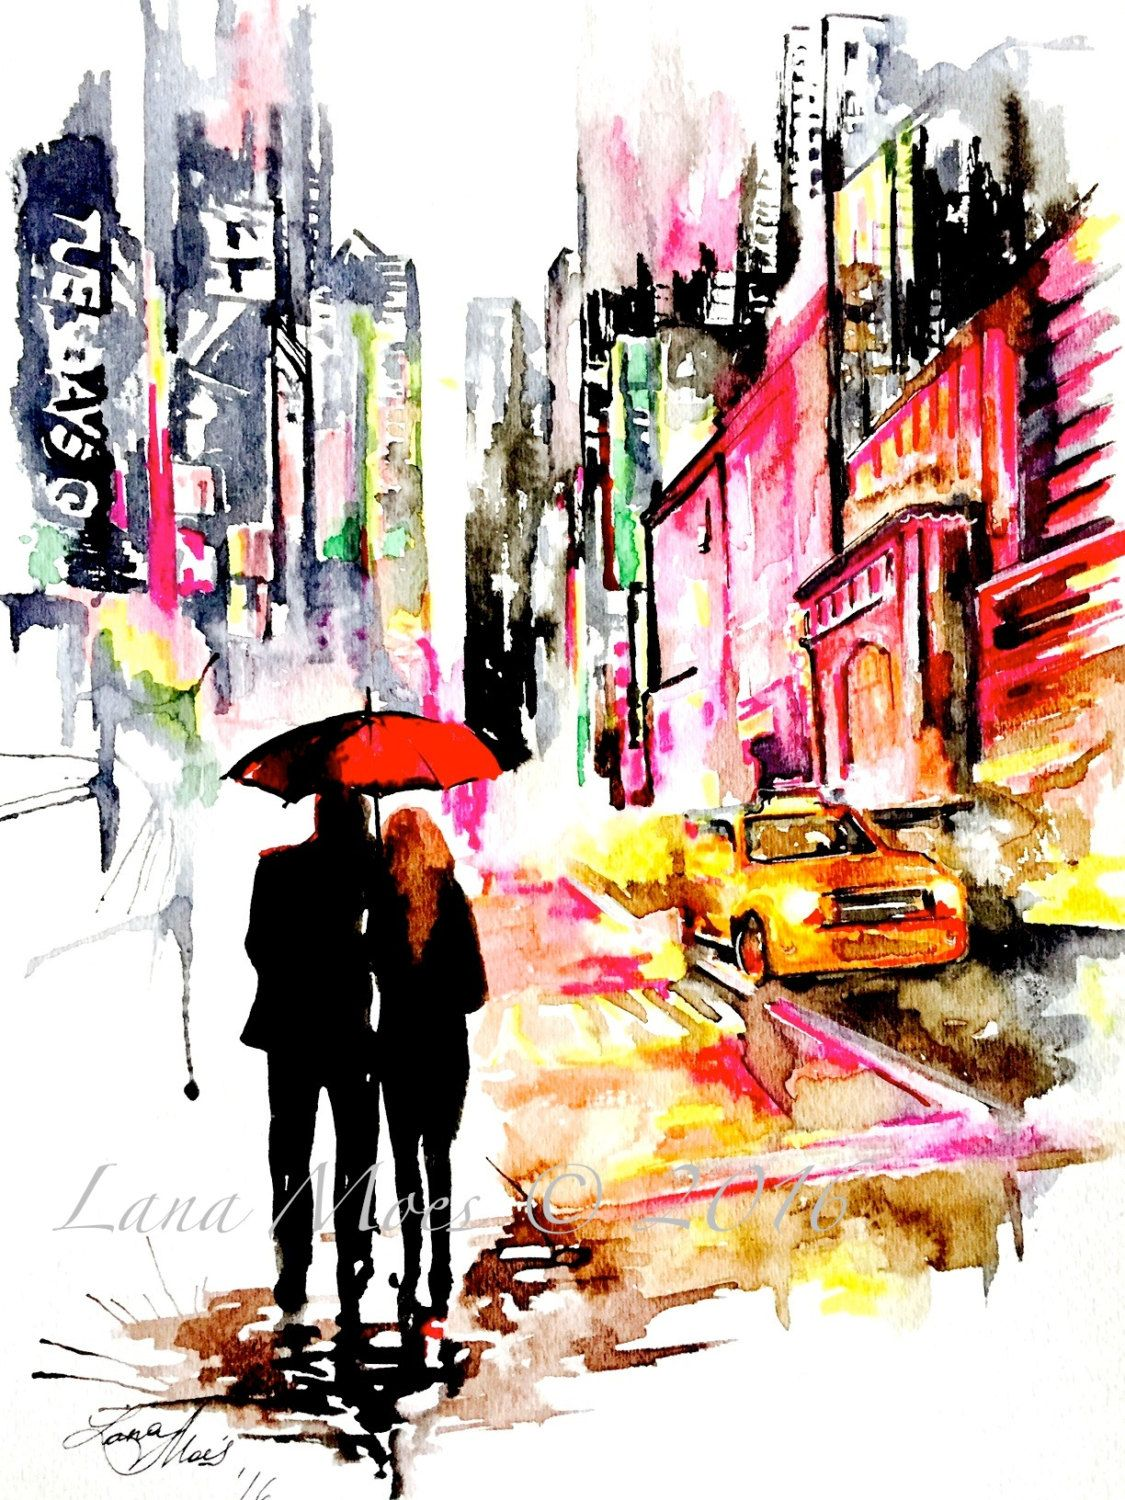 New York City Love Watercolor Painting Wanderlust By Lana Moes